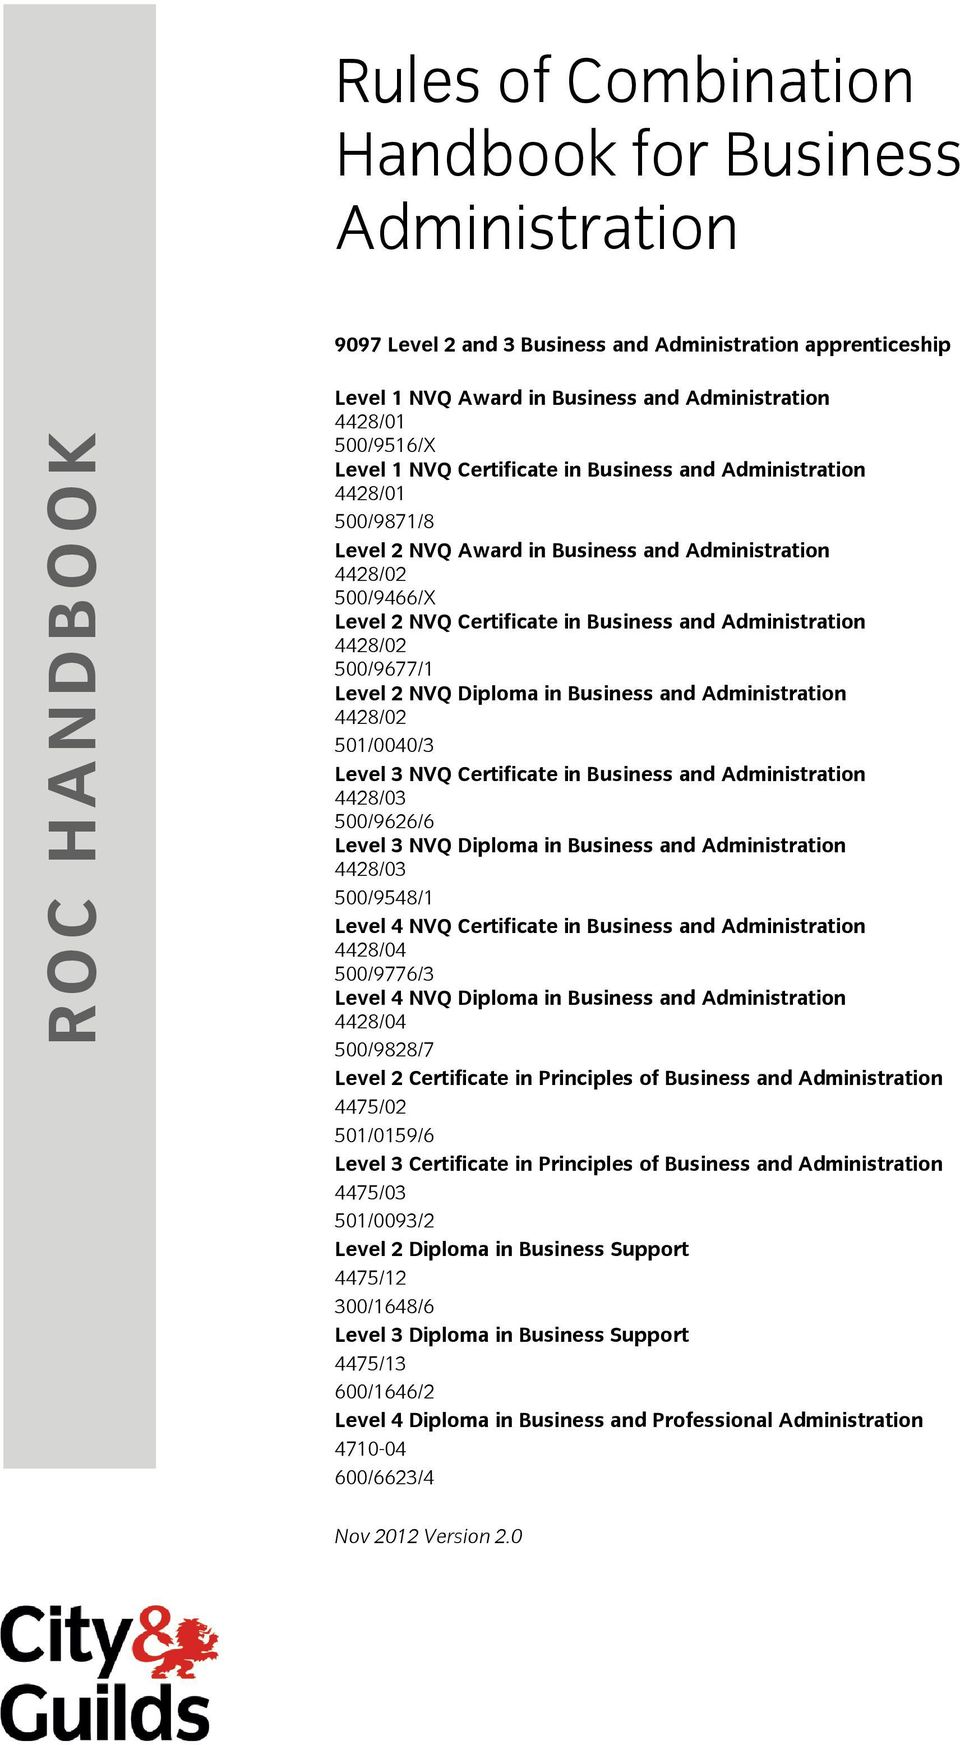 Rules of Combination Handbook for Business Administration - PDF